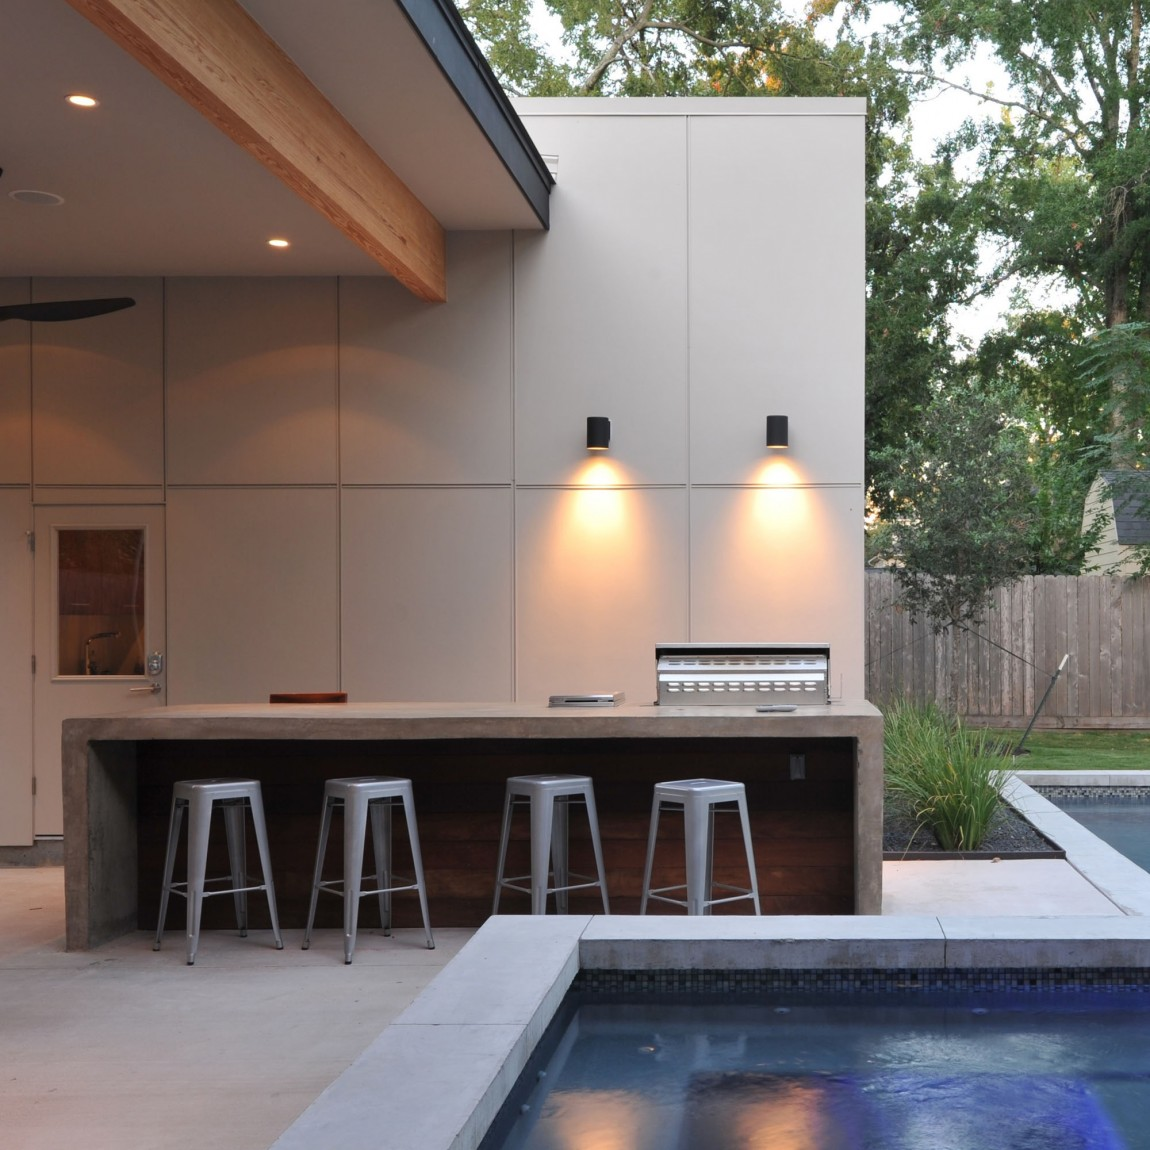 Ultimate Outdoor Kitchen: Establishing The Ultimate Outdoor Kitchen